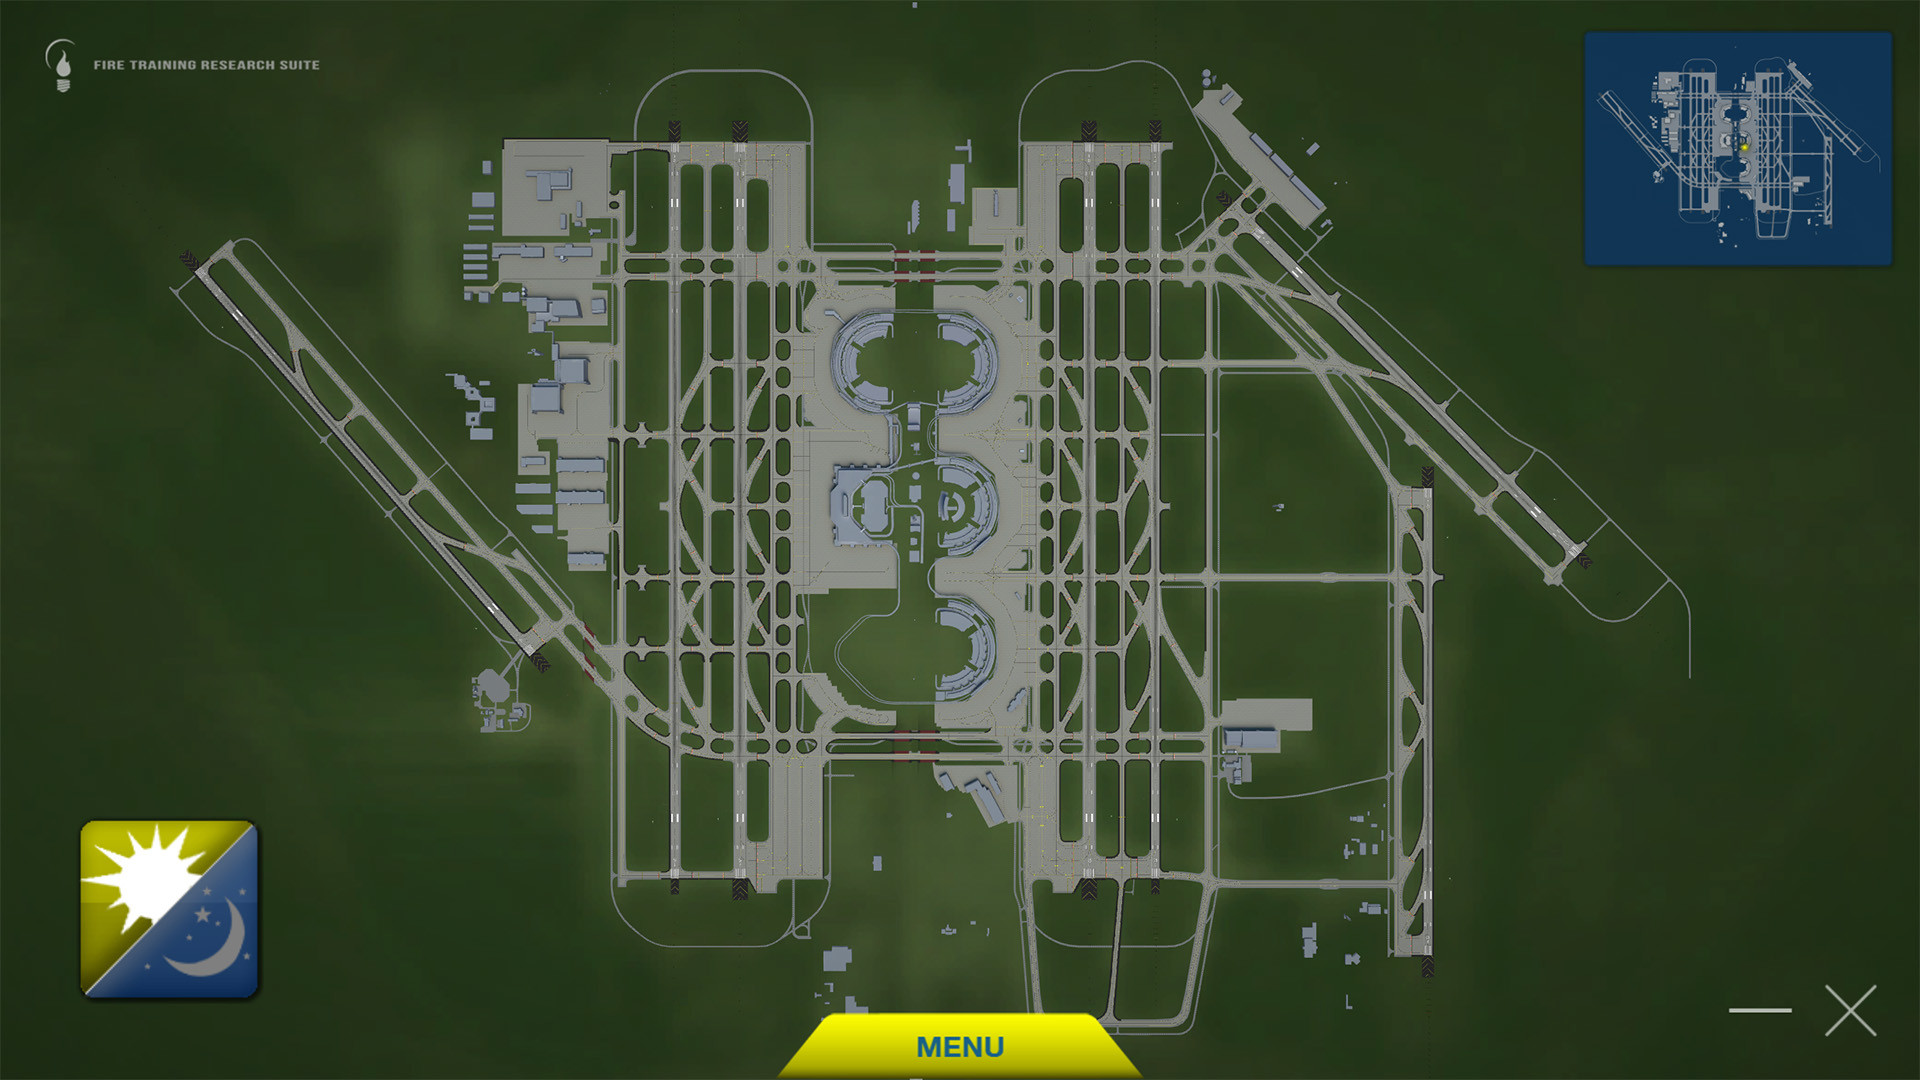 Full model of DFW airport, took a while to model due to the need to make it accurate. All markings modeled, all signs modeled (1,237 textures for that)